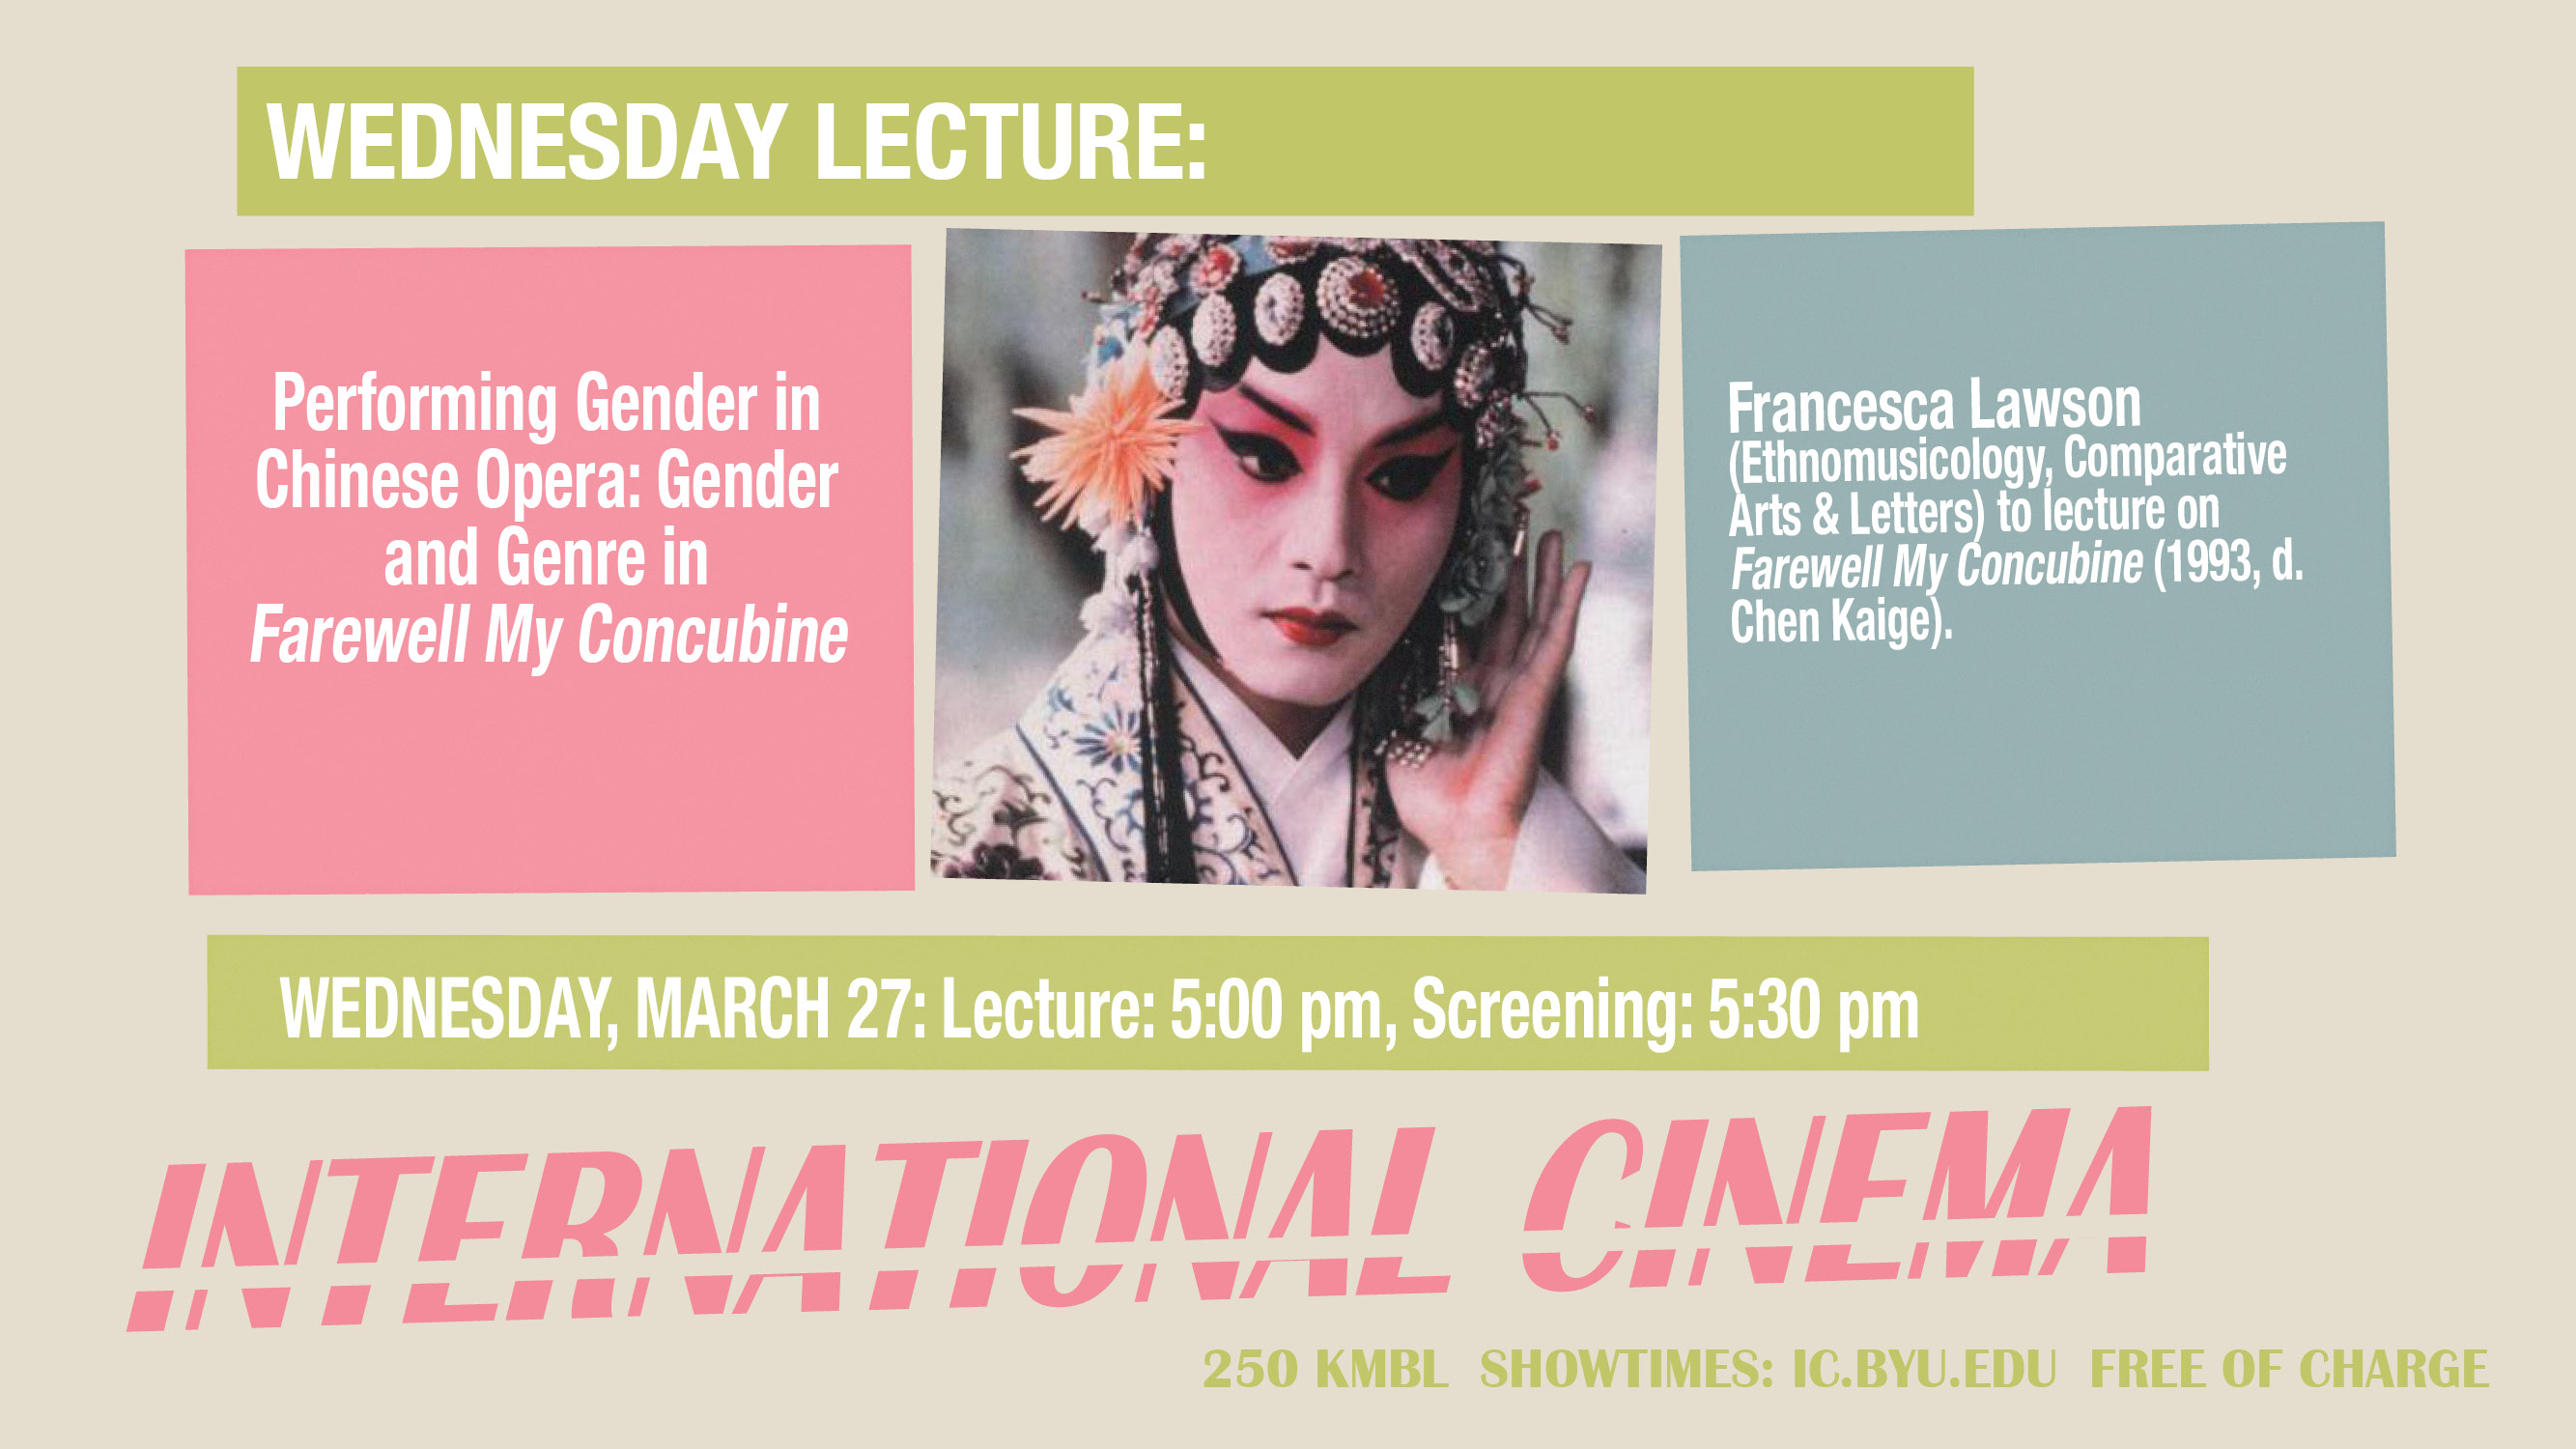 Performing Gender in Chinese Opera: Gender and Genre in 'Farewell My Concubine'